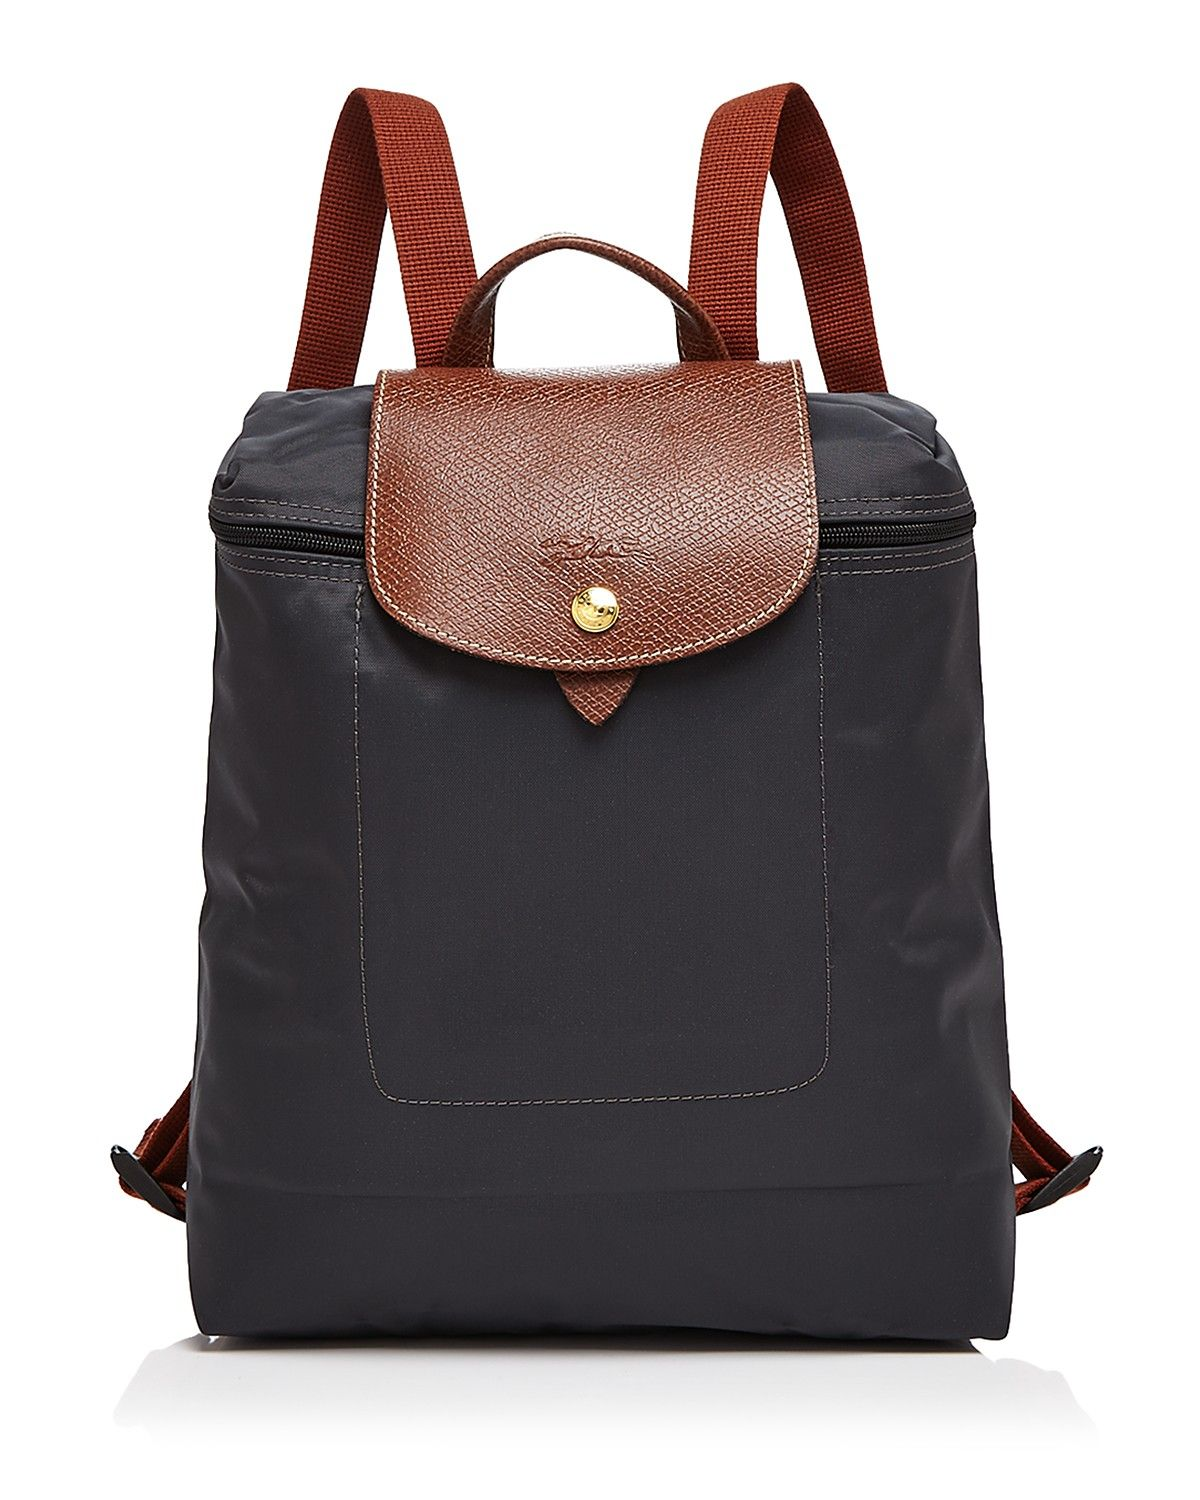 Longchamp Backpack - Le Pliage  eb32203d0bf1a